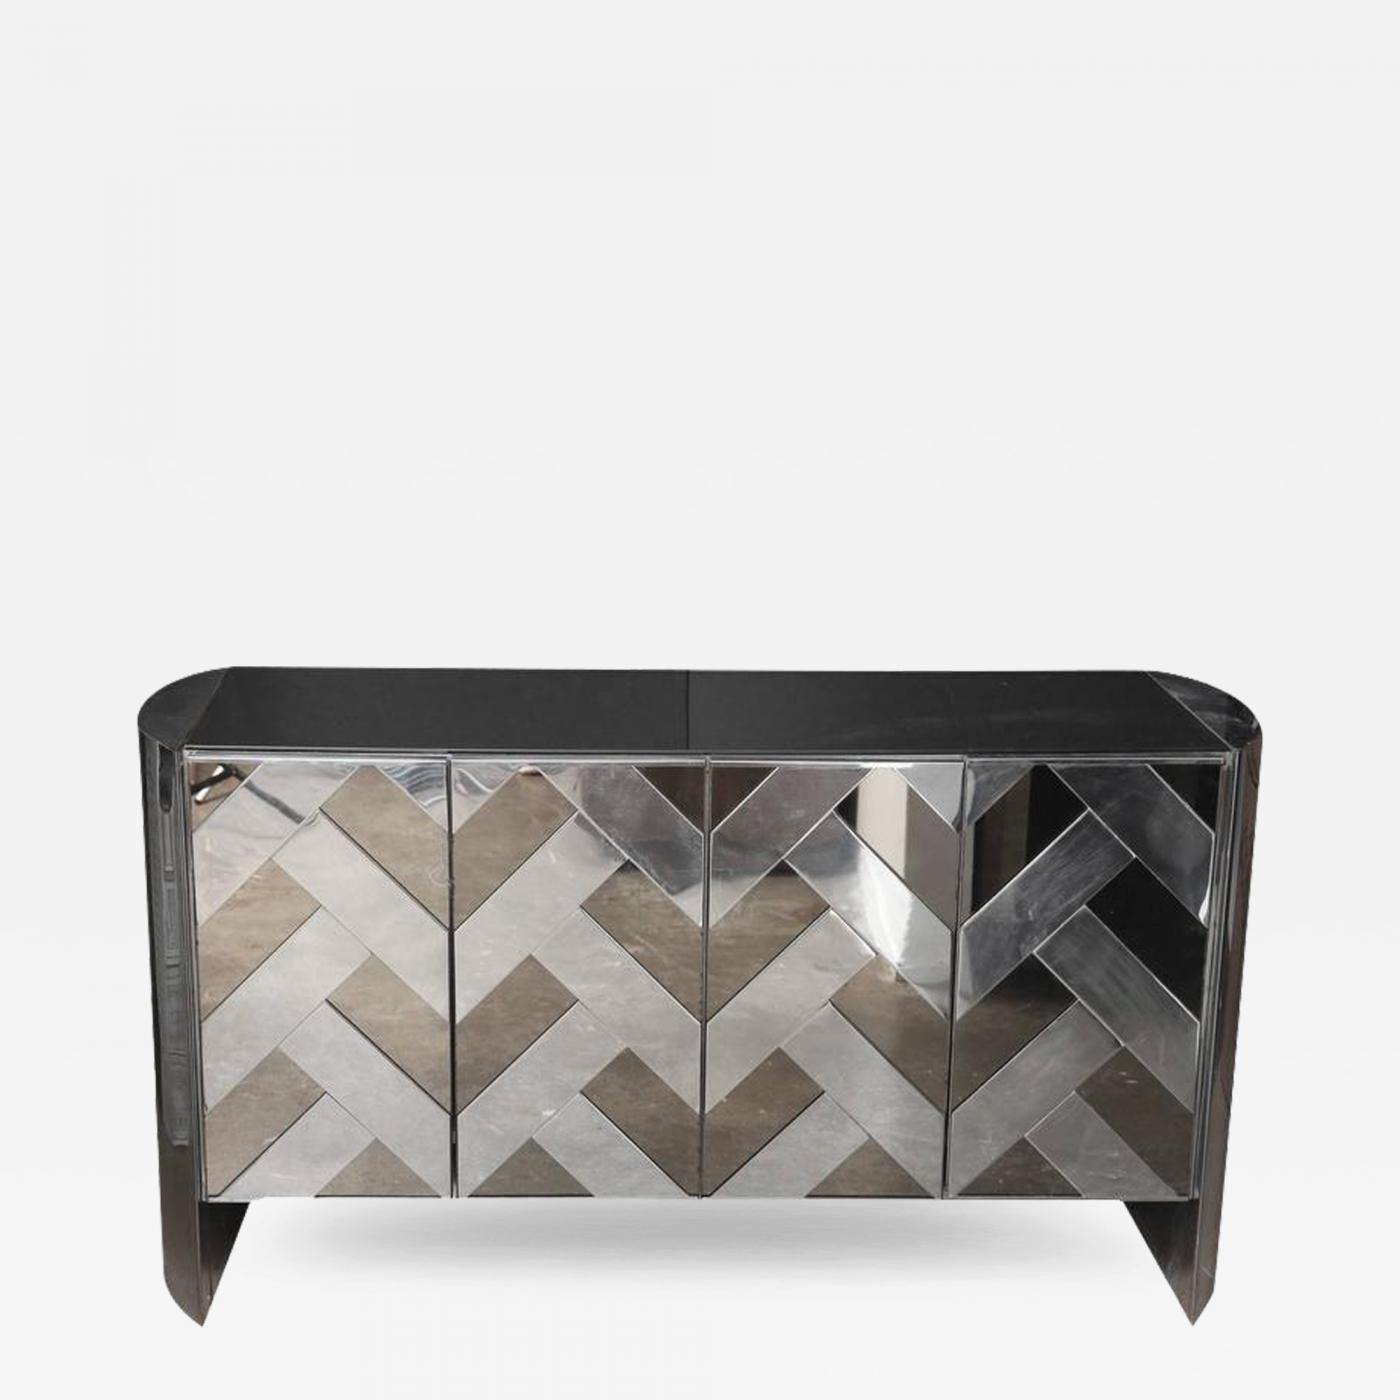 Mid century modern vintage smoked glass and mirror credenza or sideboard